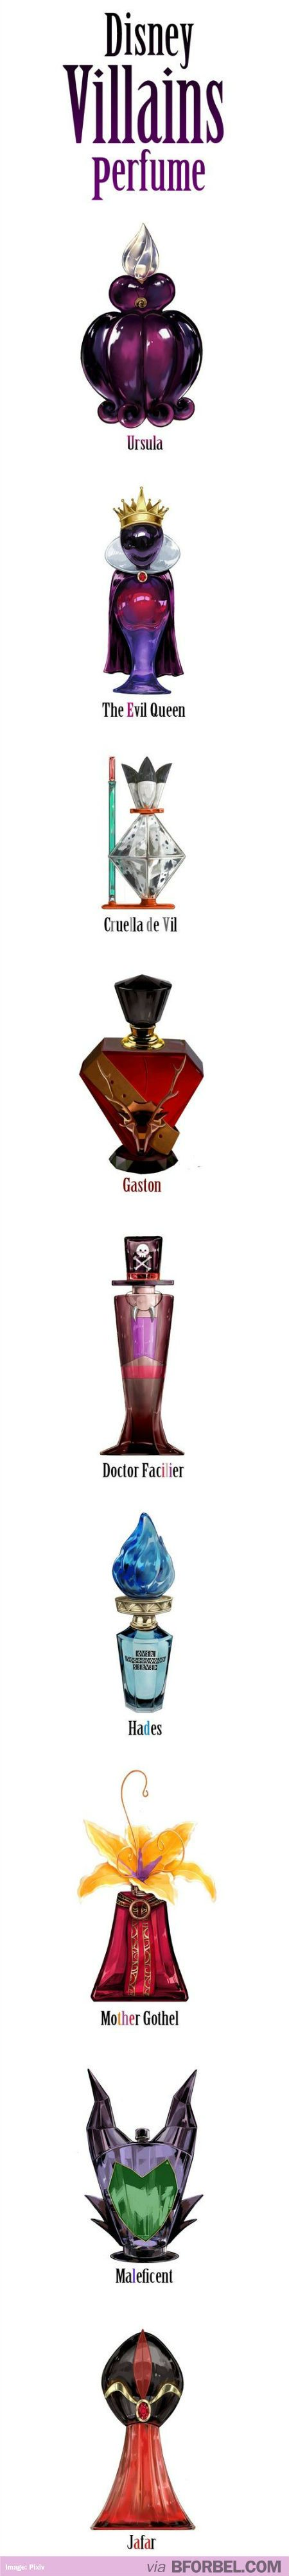 Disney Villain Inspired Perfume Bottles...